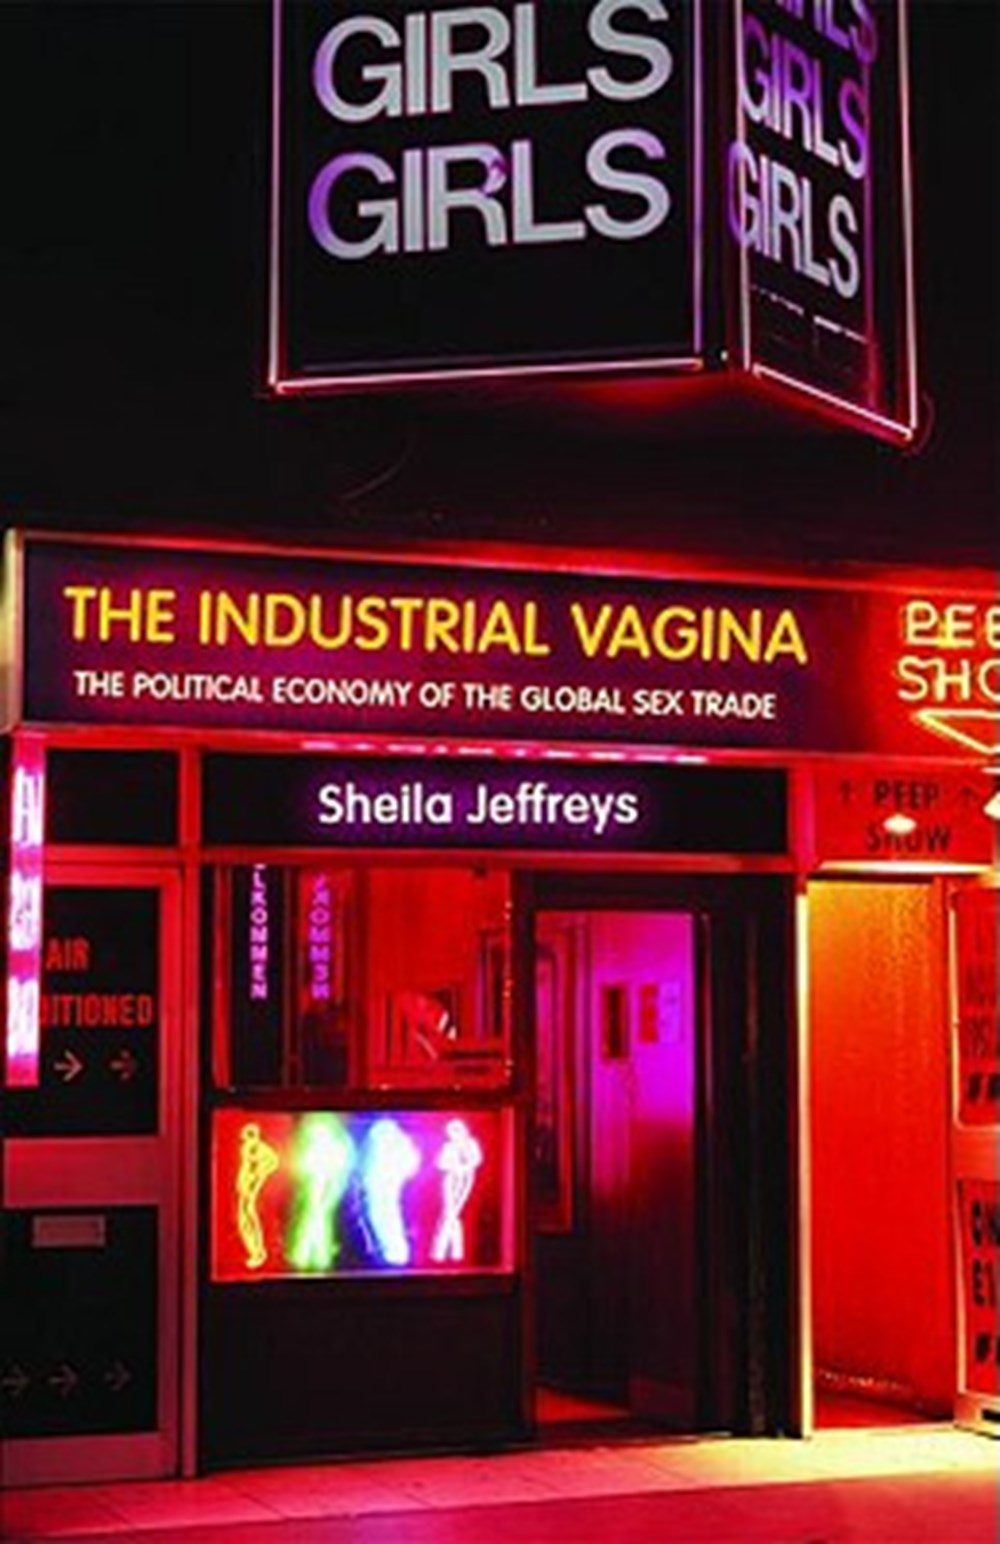 Industrial Vagina The Political Economy of the Global Sex Trade